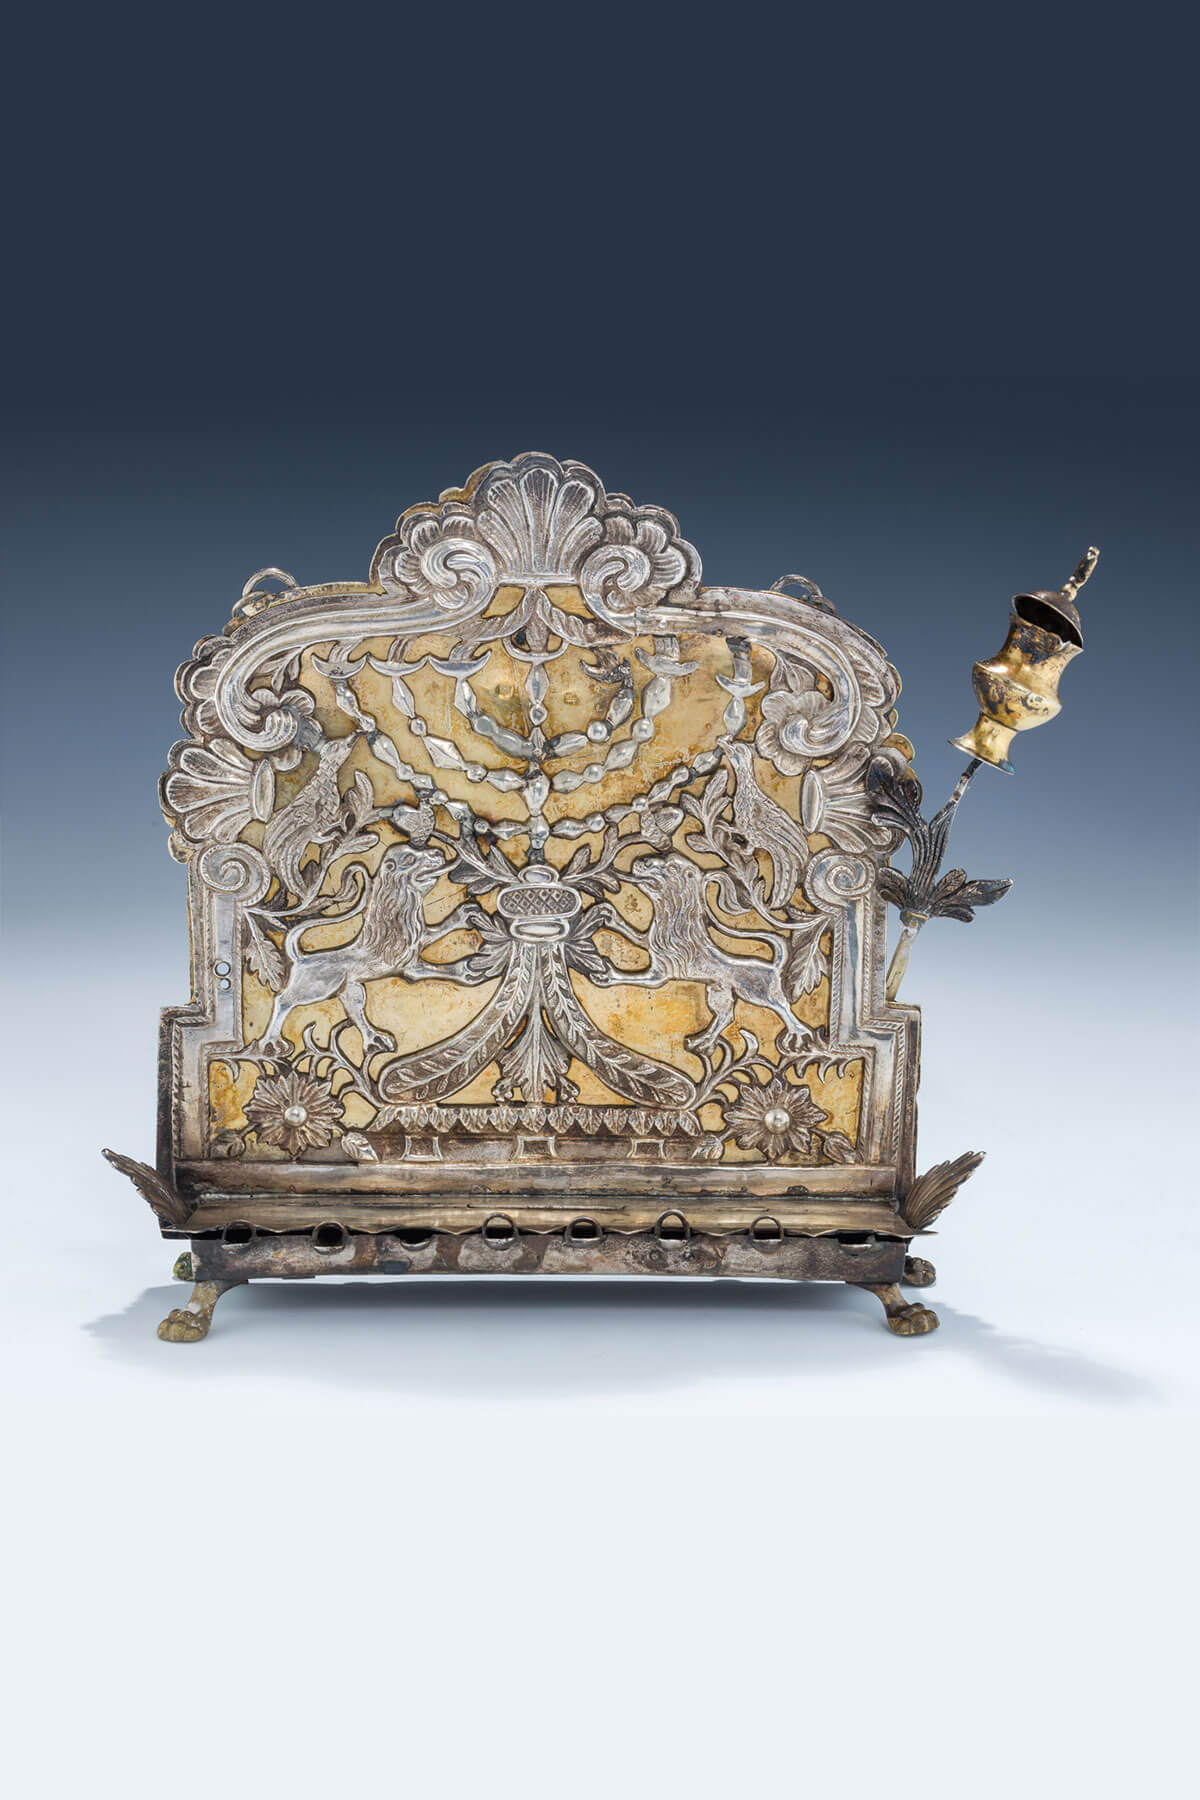 116. A Rare And Early Parcel Gilt Chanukah Lamp